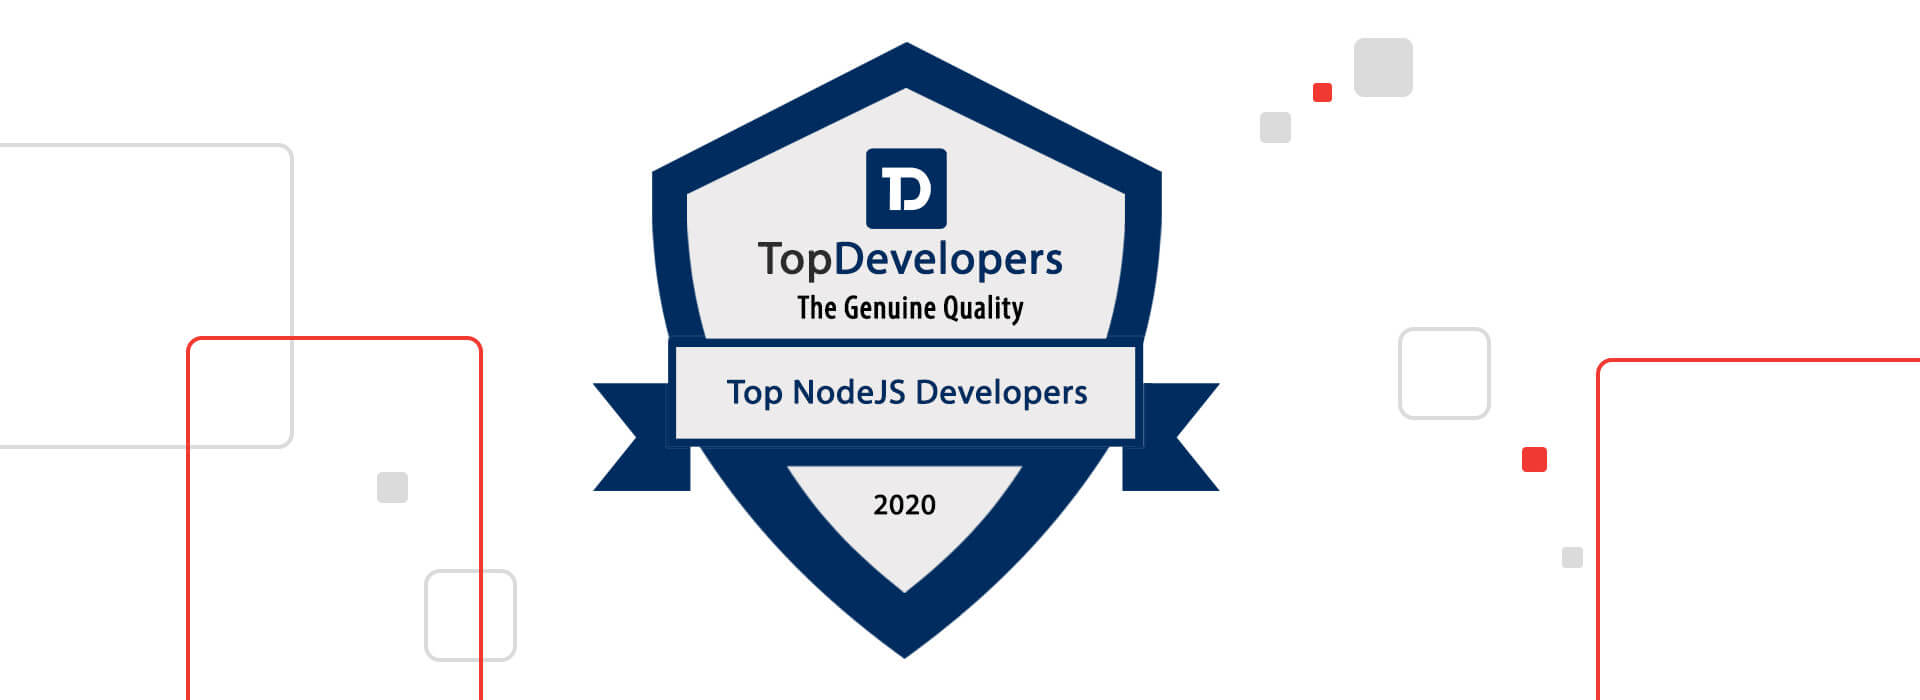 QArea listed as a Top NodeJS Developer by TopDevelopers.co